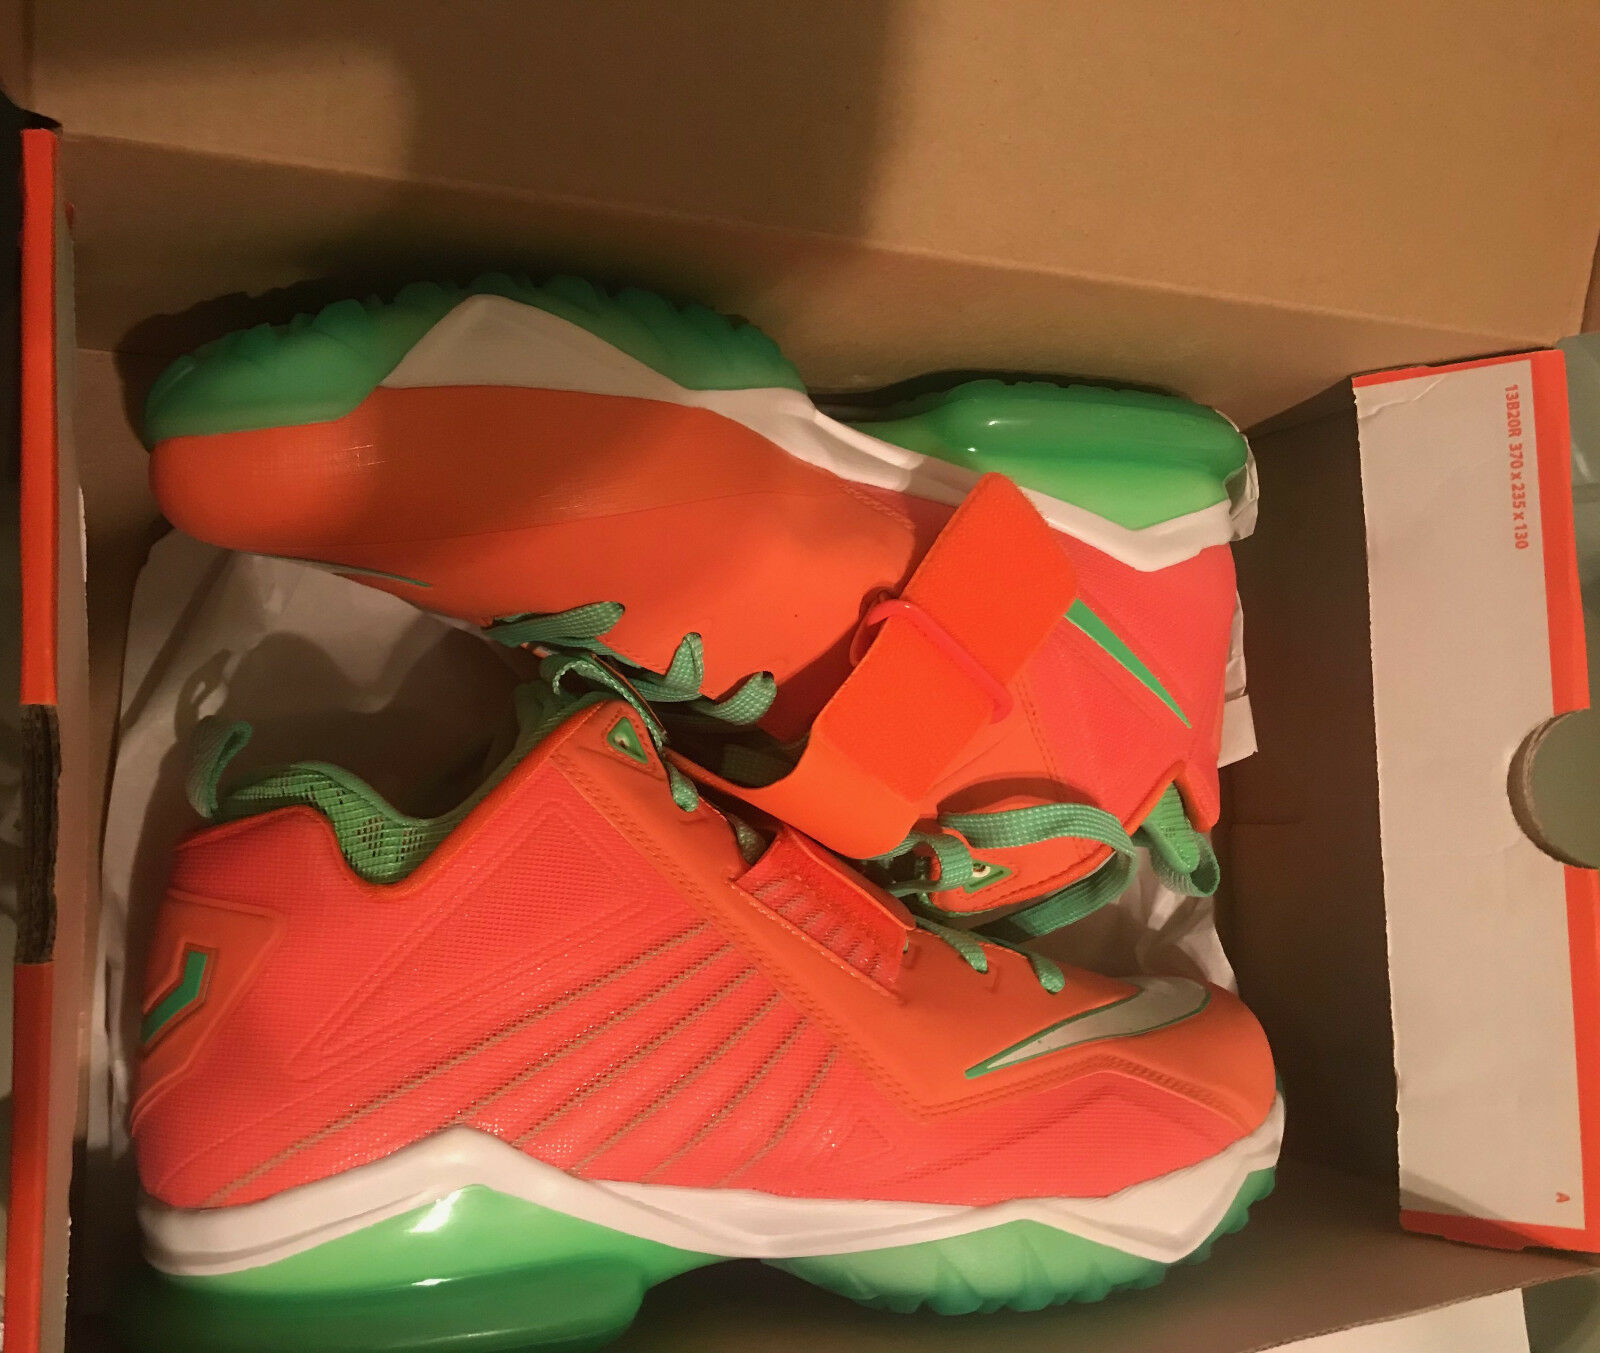 Nike Zoom CJ Trainer 2 Mens shoes Size 11.5 orange and Green